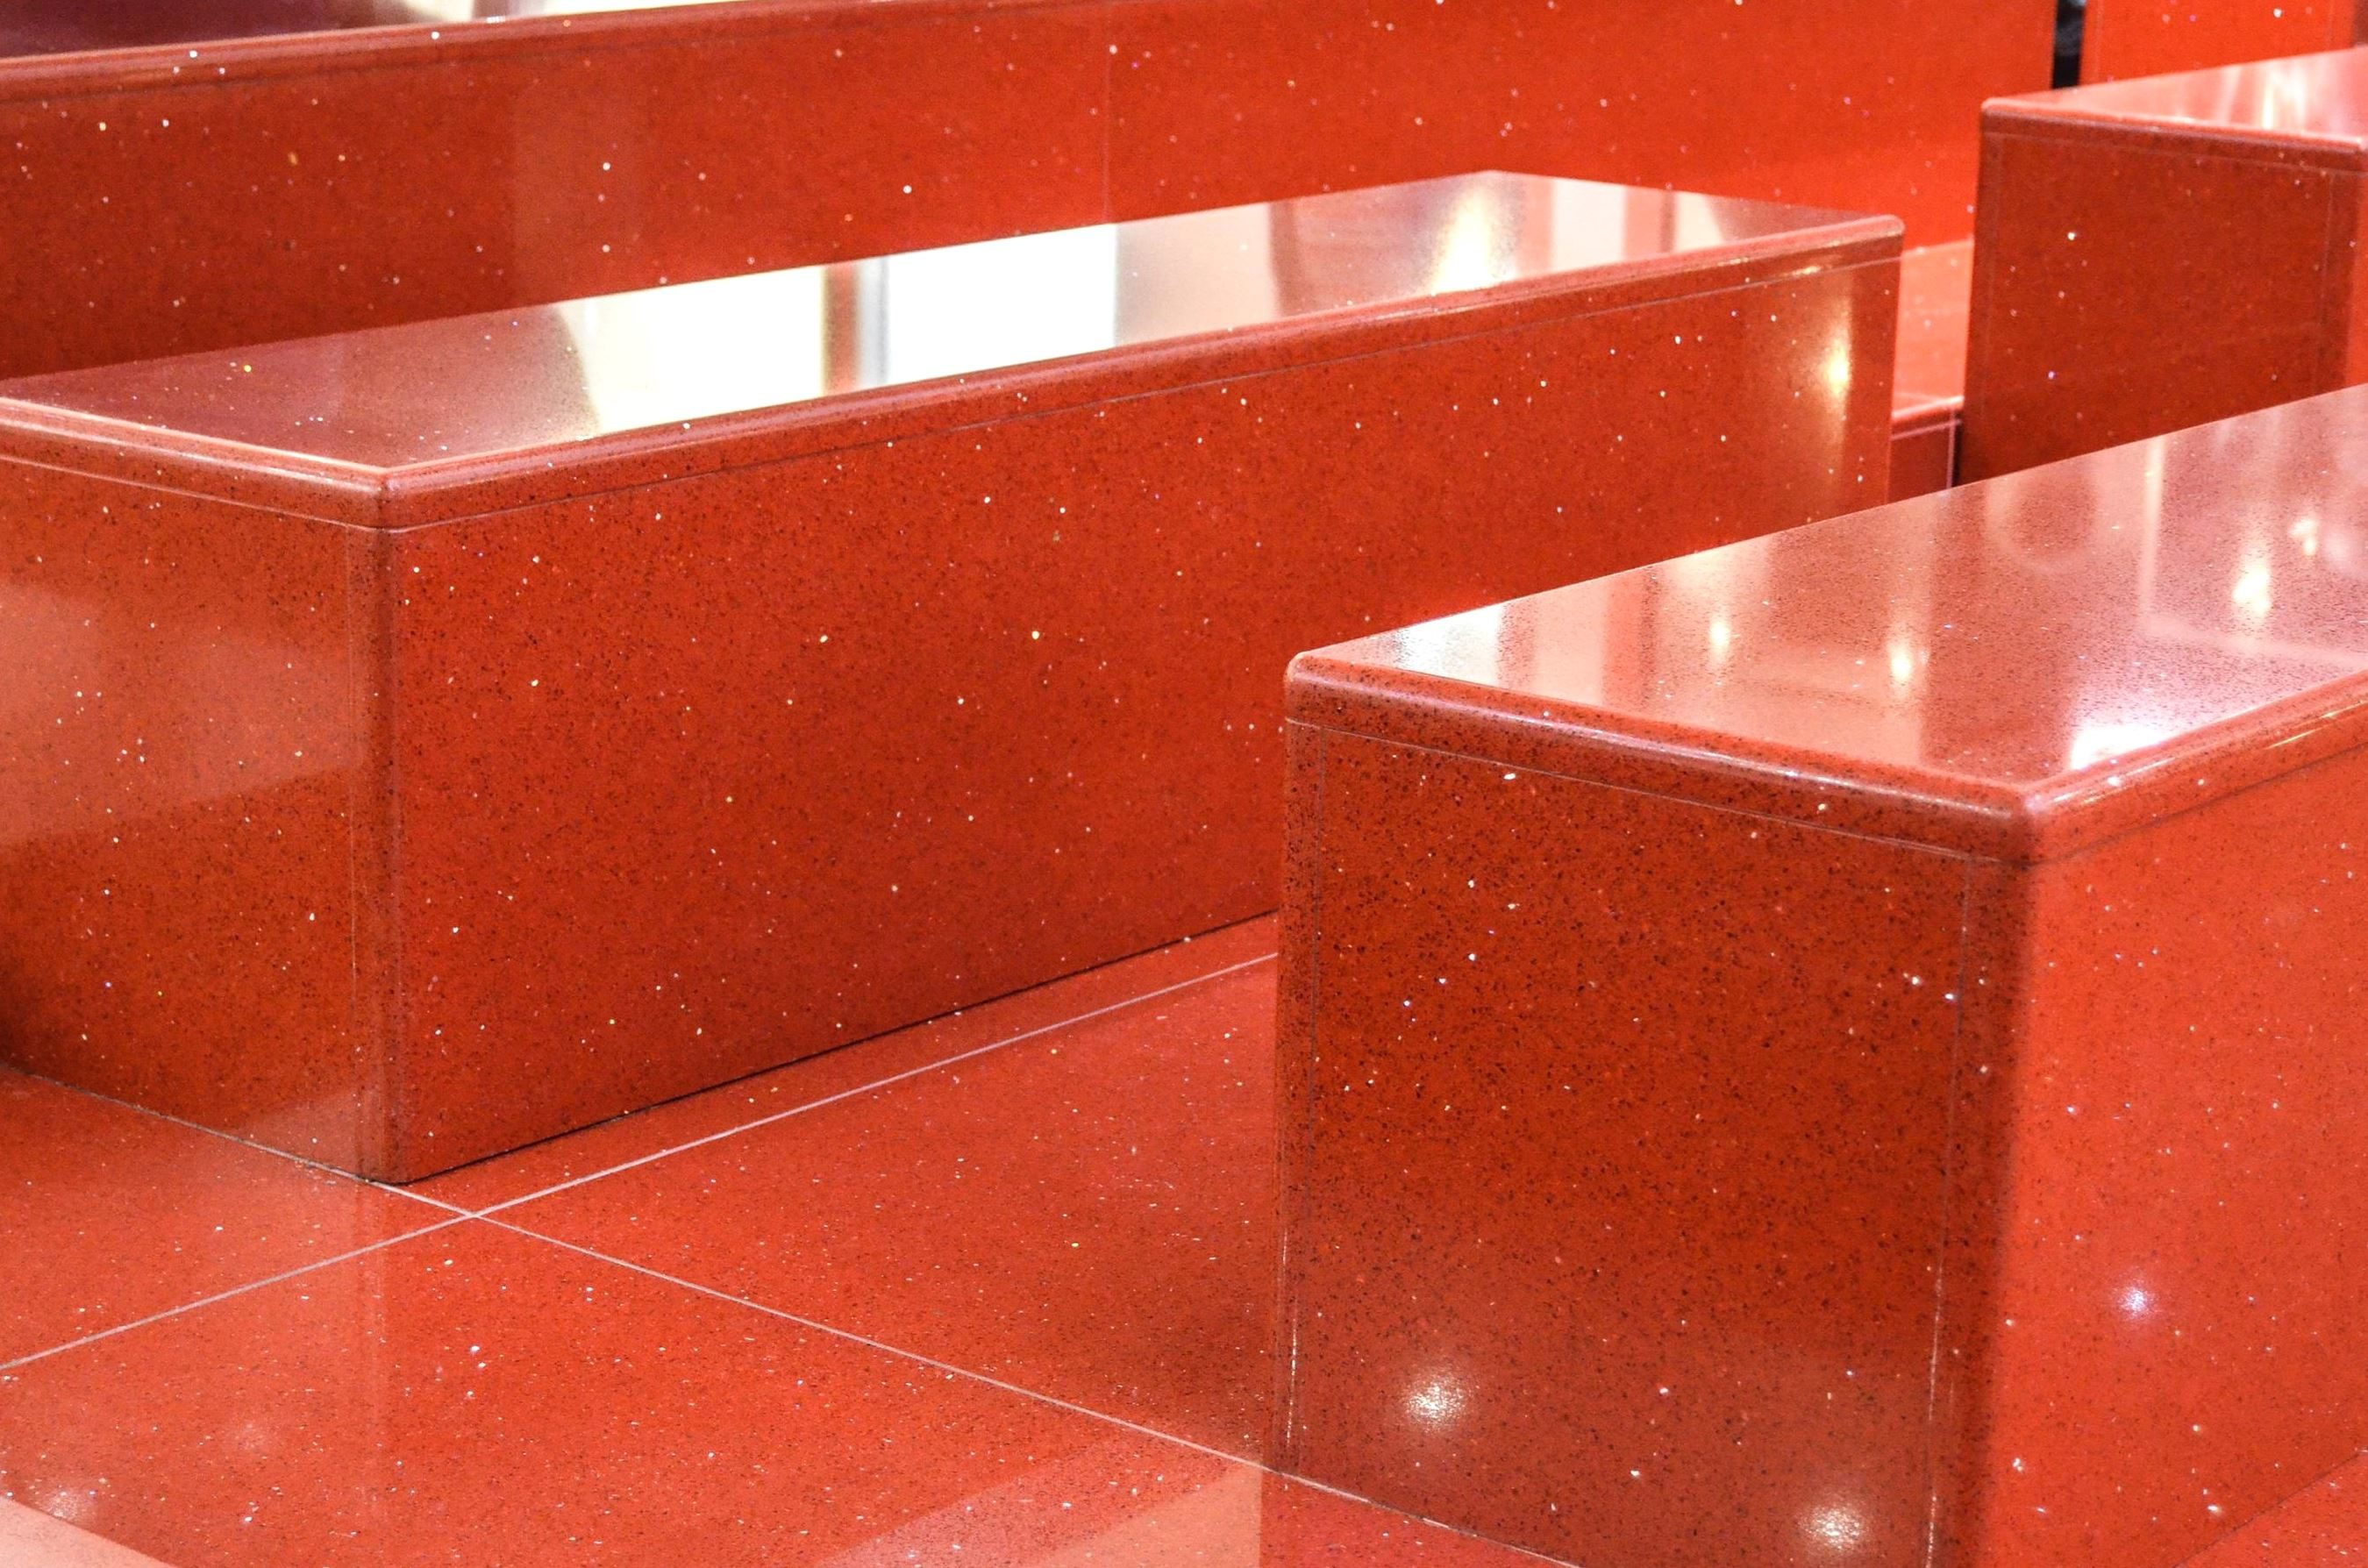 Free picture furniture red floor tile reflection red box furniture red floor tile reflection red box doublecrazyfo Image collections